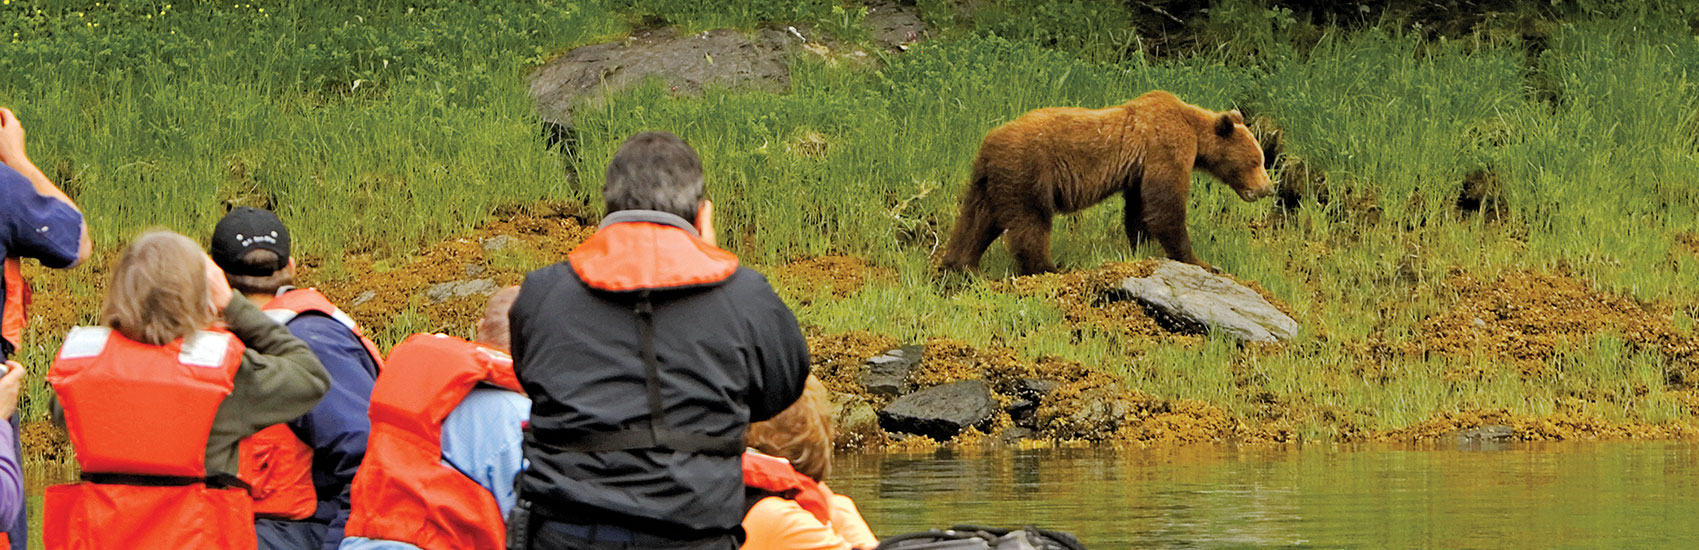 Authentic Alaska with Lindblad Expeditions 2